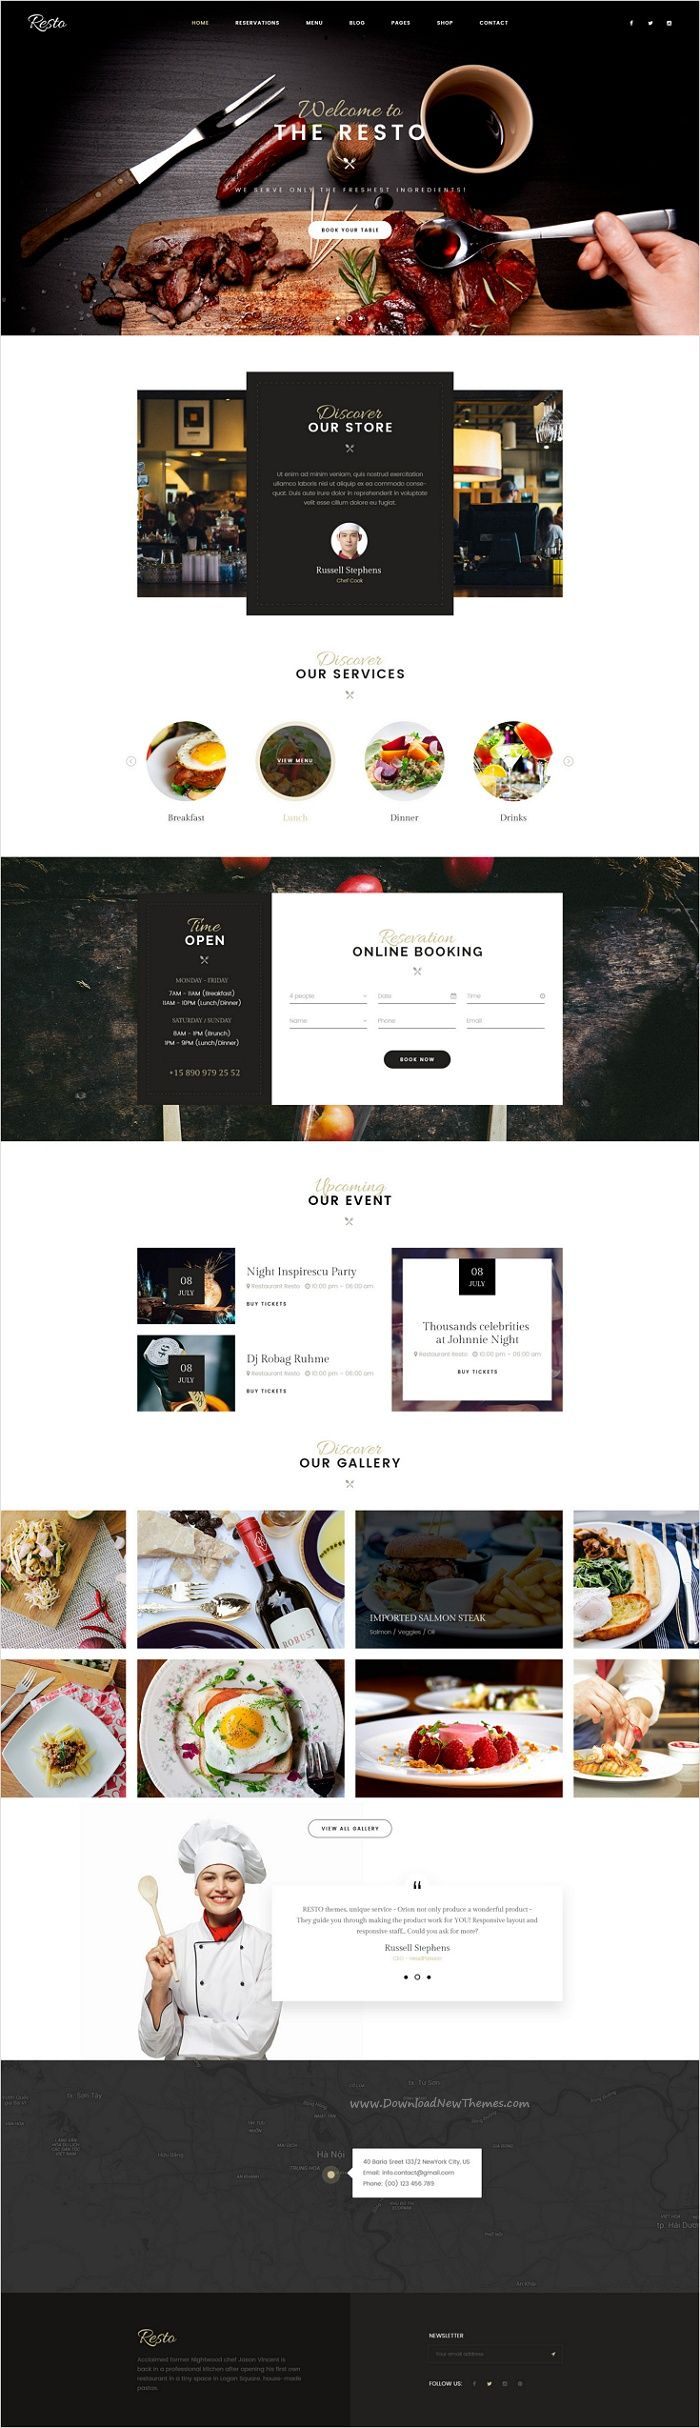 Resto is an attractive premium #PSD #template for awesome #restaurant, cafe or #food business website with 6 multipurpose homepage layouts and 22 organized PSD pages download now➩ https://themeforest.net/item/resto-multipurpose-restaurant-cafe-psd-template/17518251?ref=Datasata